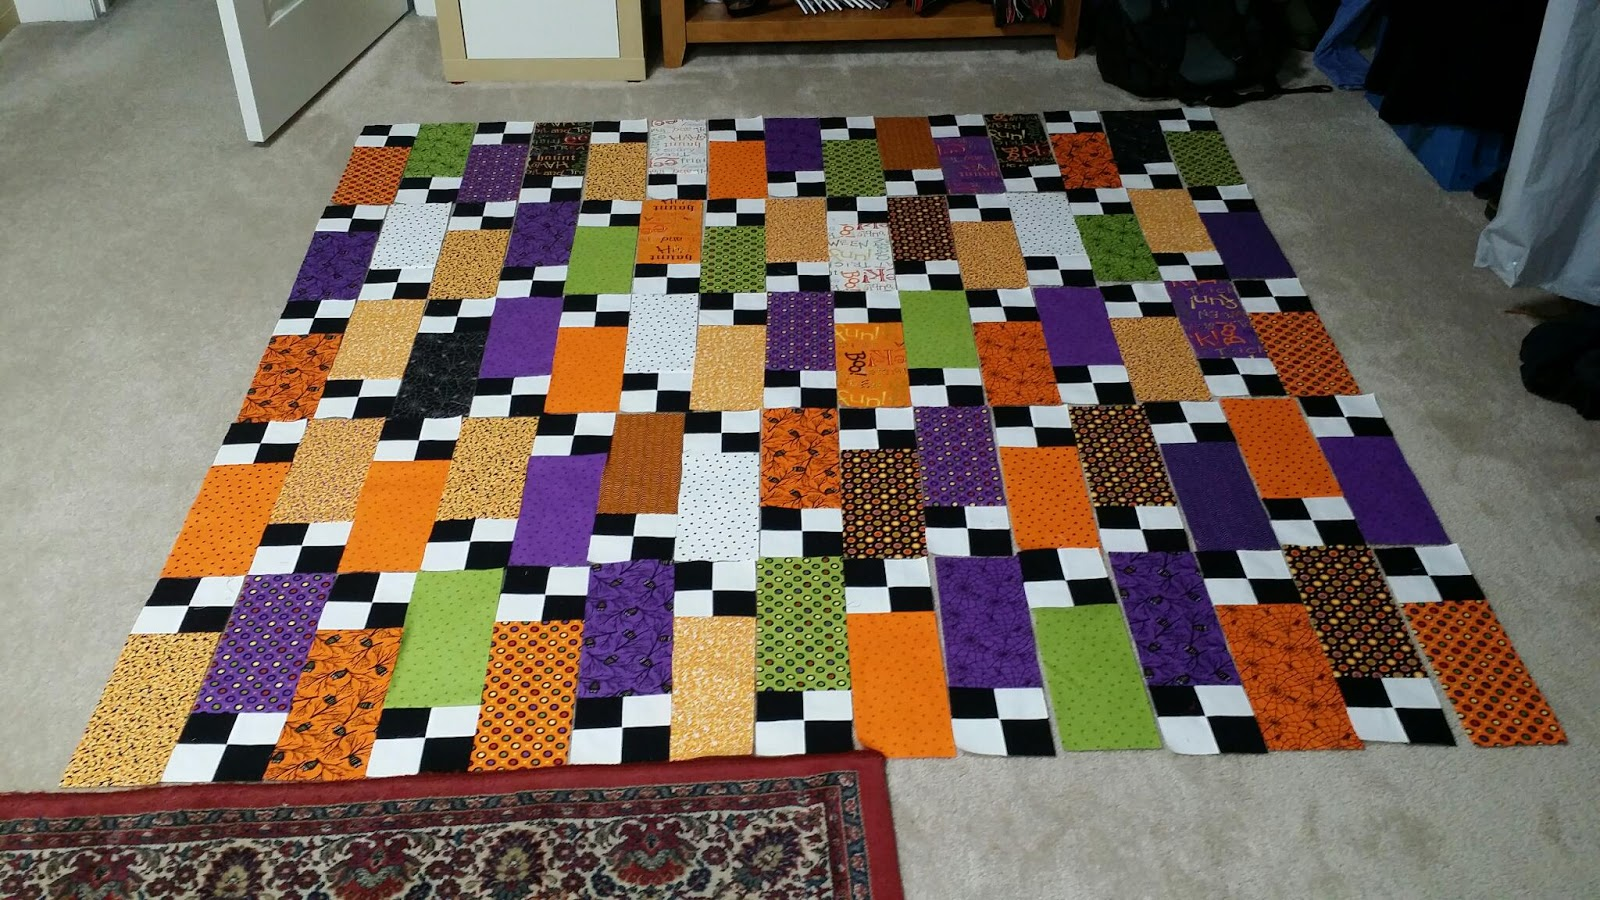 Ramblings of a quilter: A Cute Halloween Quilt